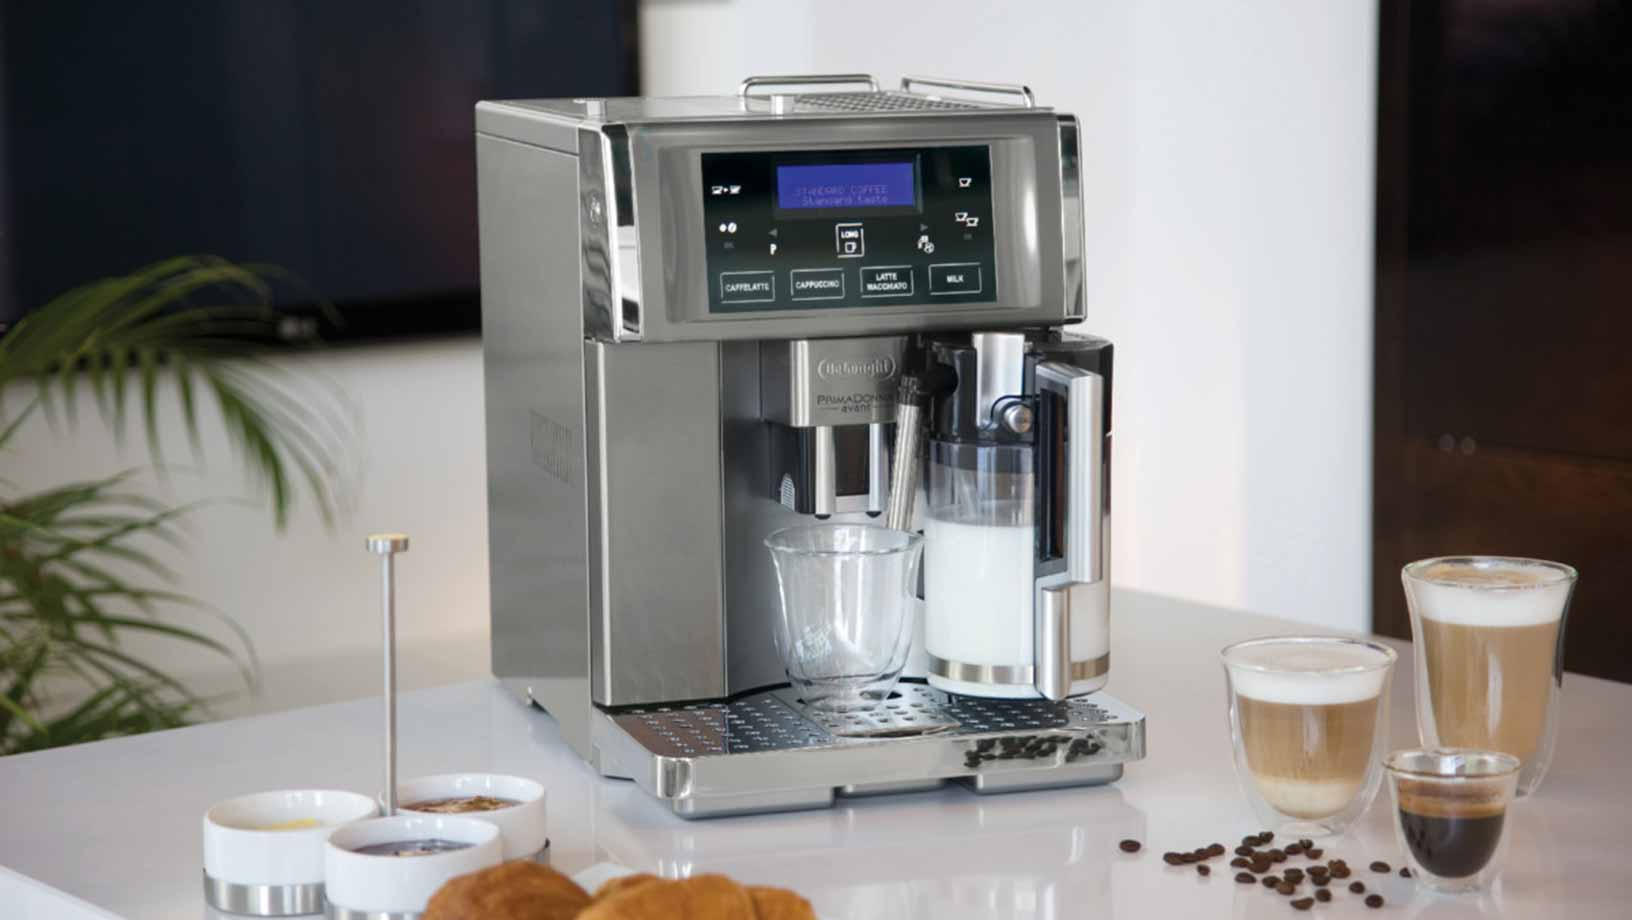 Silver coffee machine on a marbel counter top. Various cups of different types of coffee sit on the counter around it with some coffee beans spilt beside them.